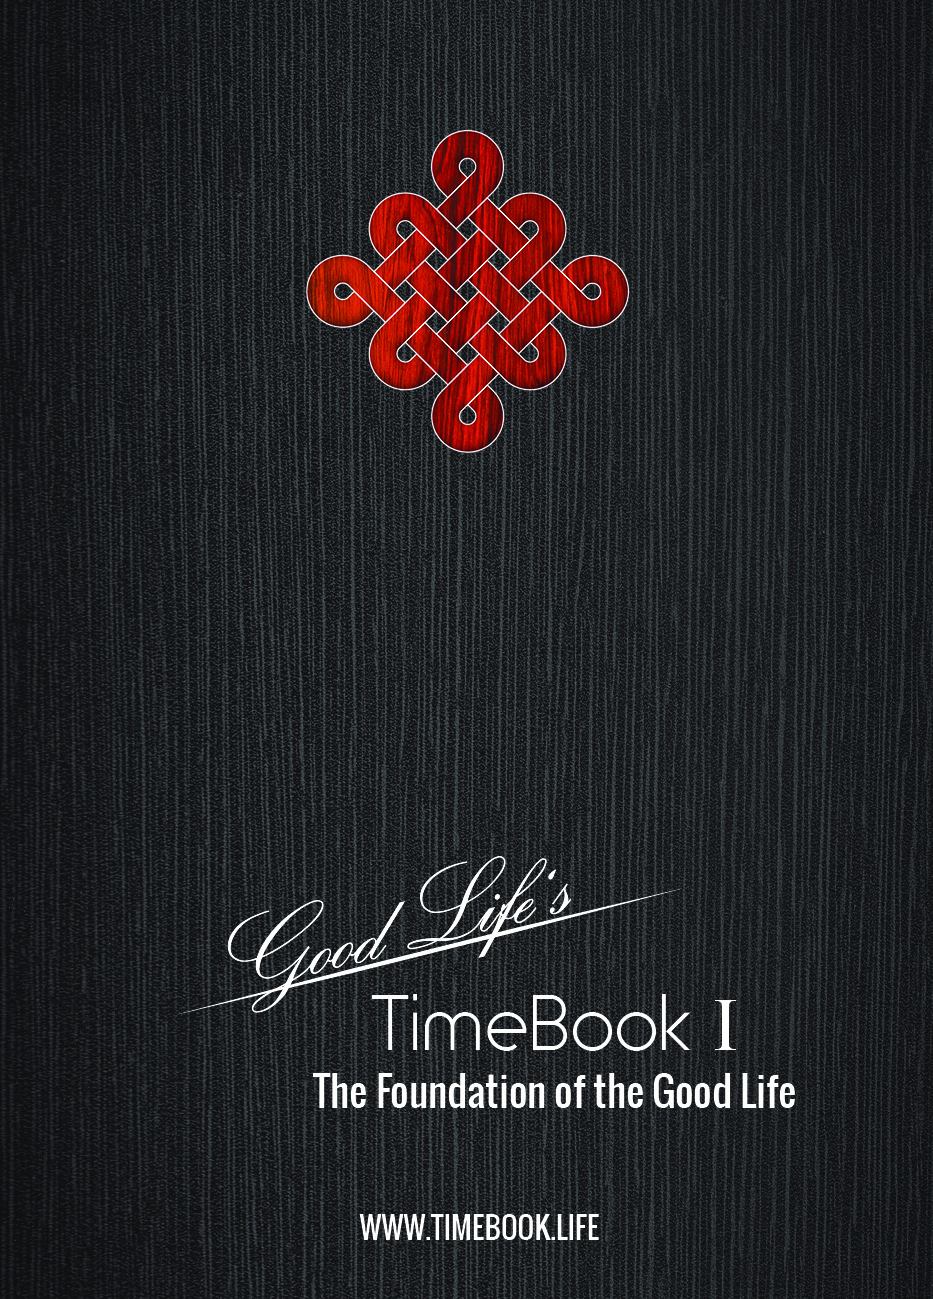 TimeBook I - The Foundation of Good Life